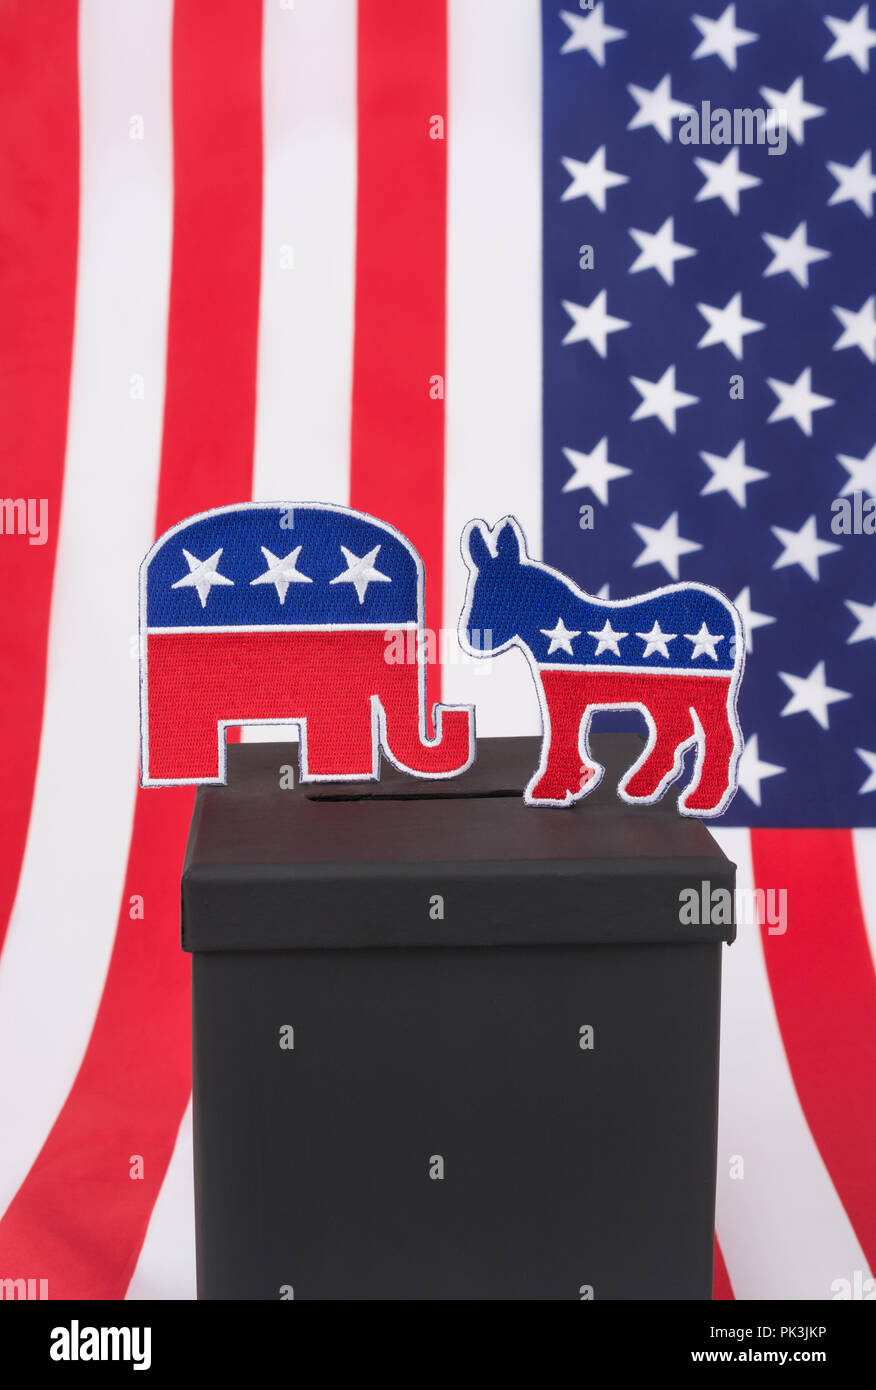 2018 US Midterm Election / Midterm elections America in November 2018. GOP / Republican  elephant and Democratic Donkey logos (patches) and ballot box - Stock Image